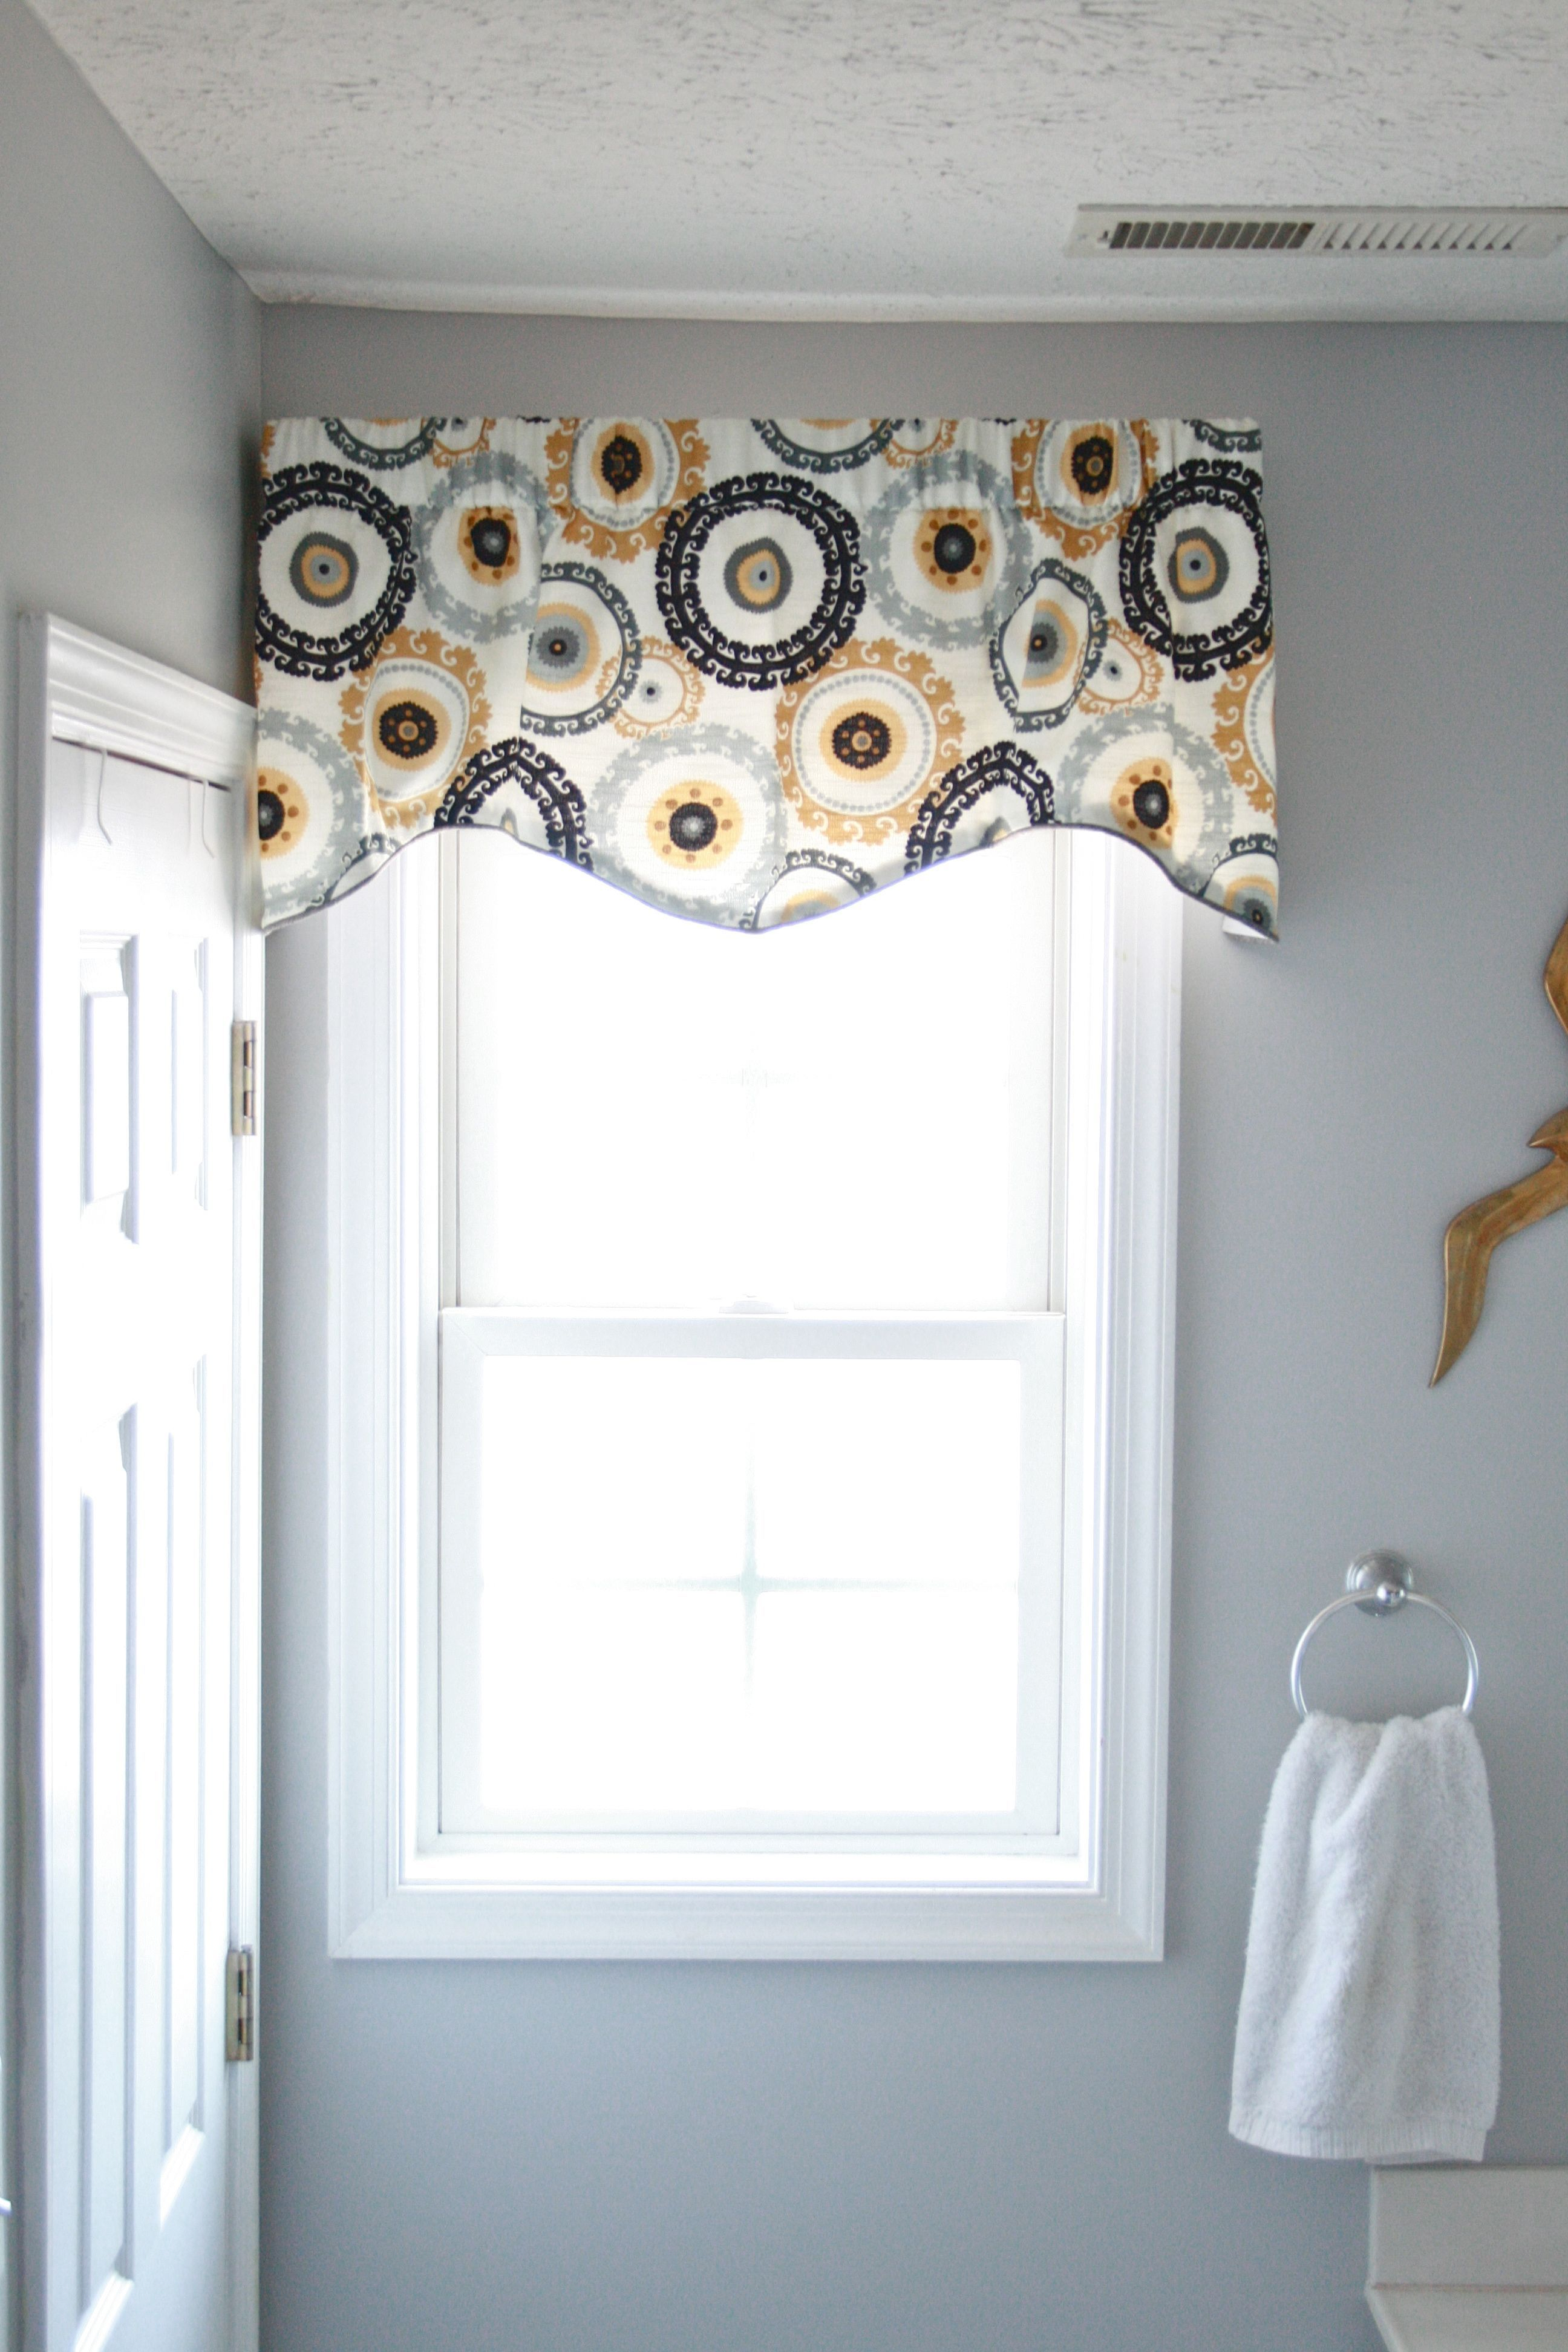 Pin On For The Home, Bathroom Window Valances